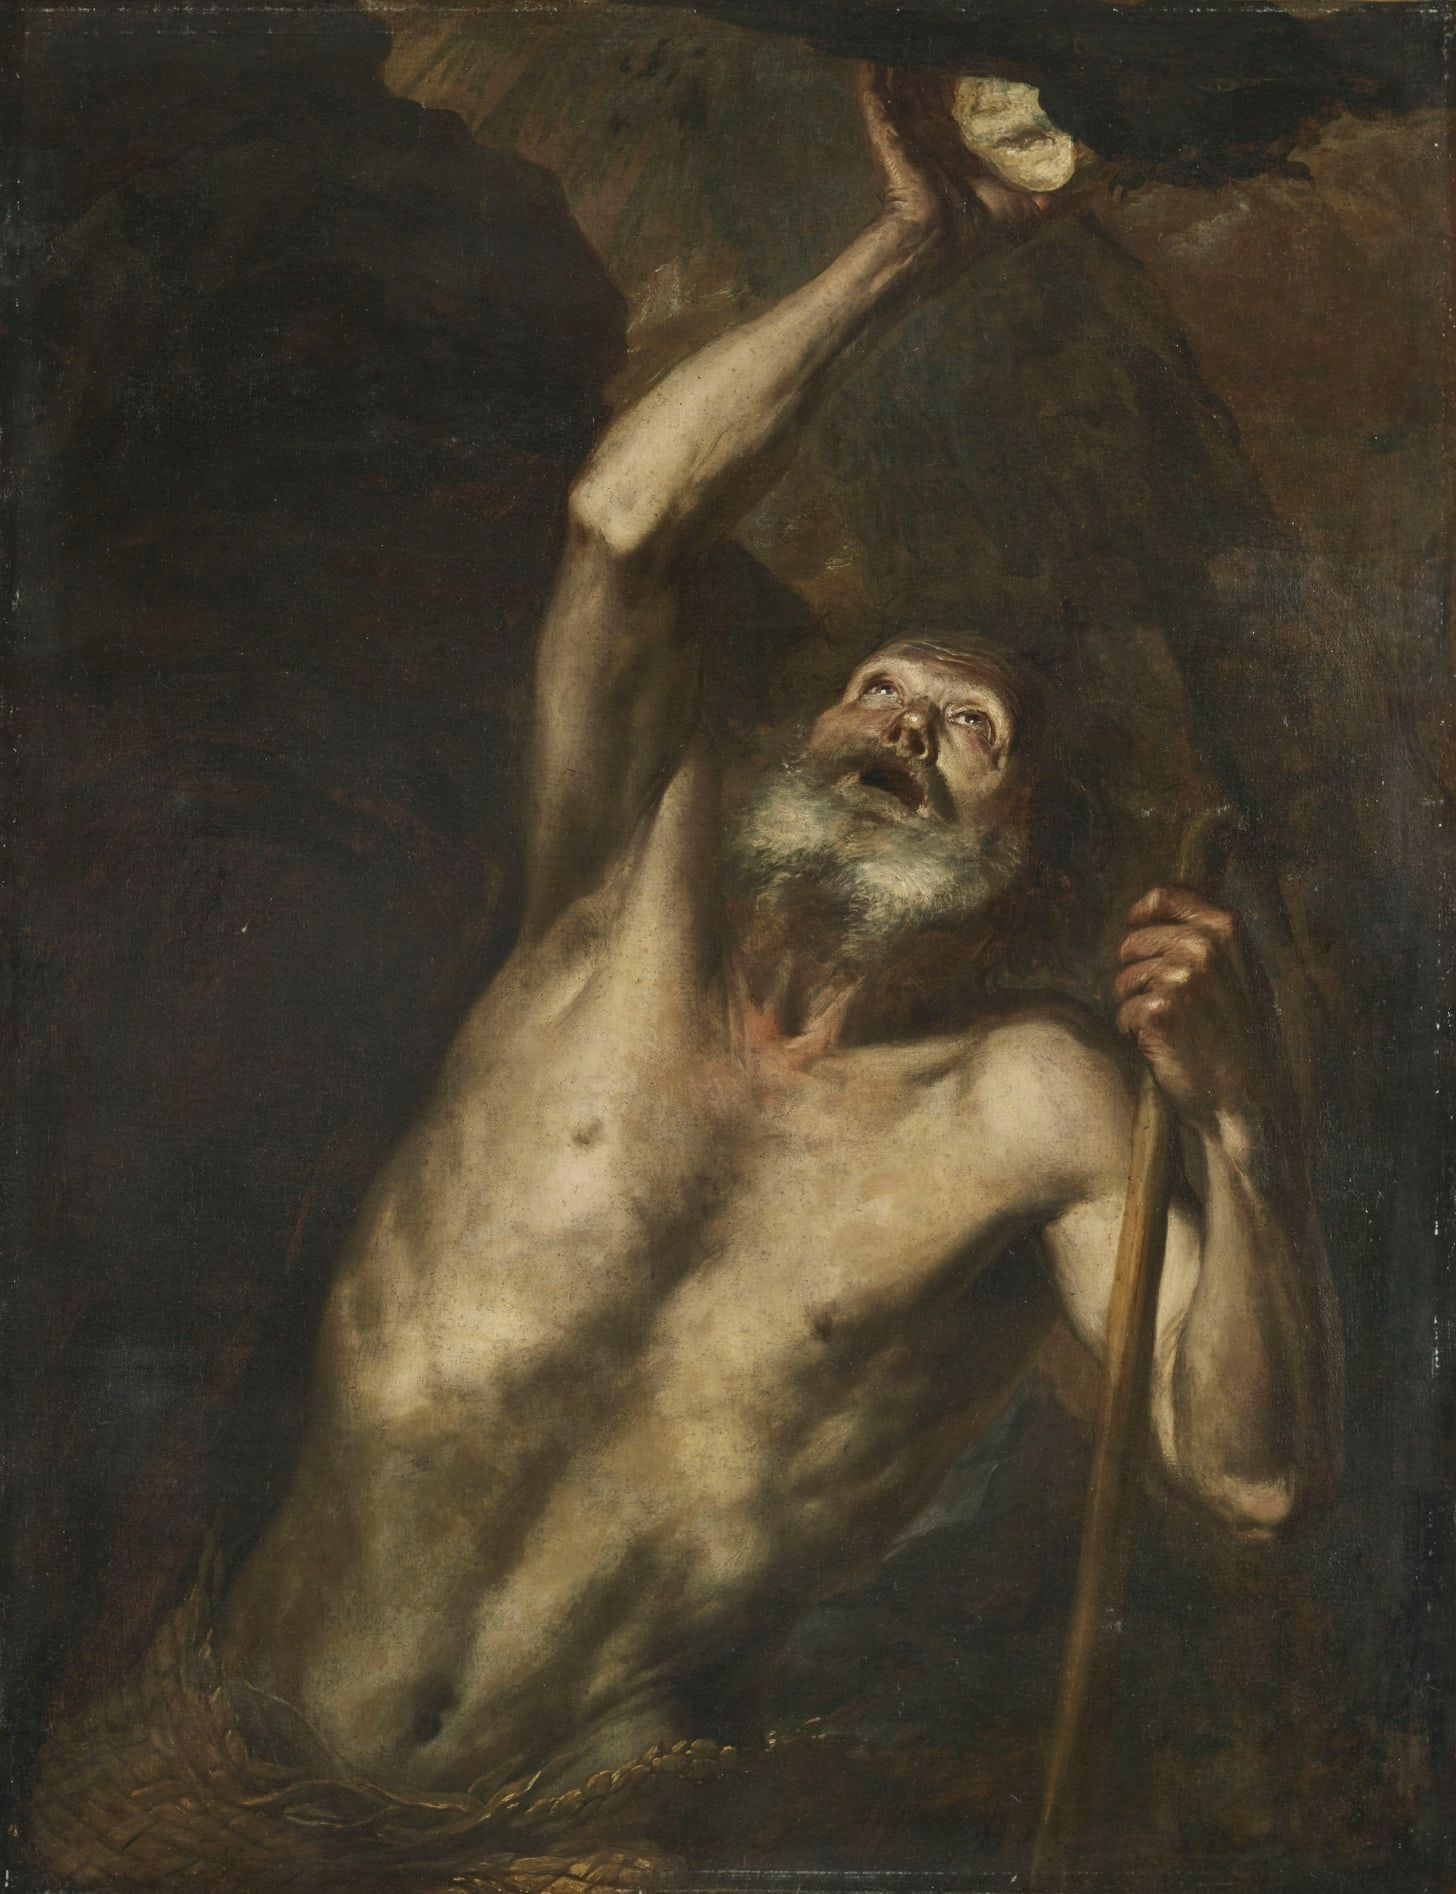 Paul of Thebes